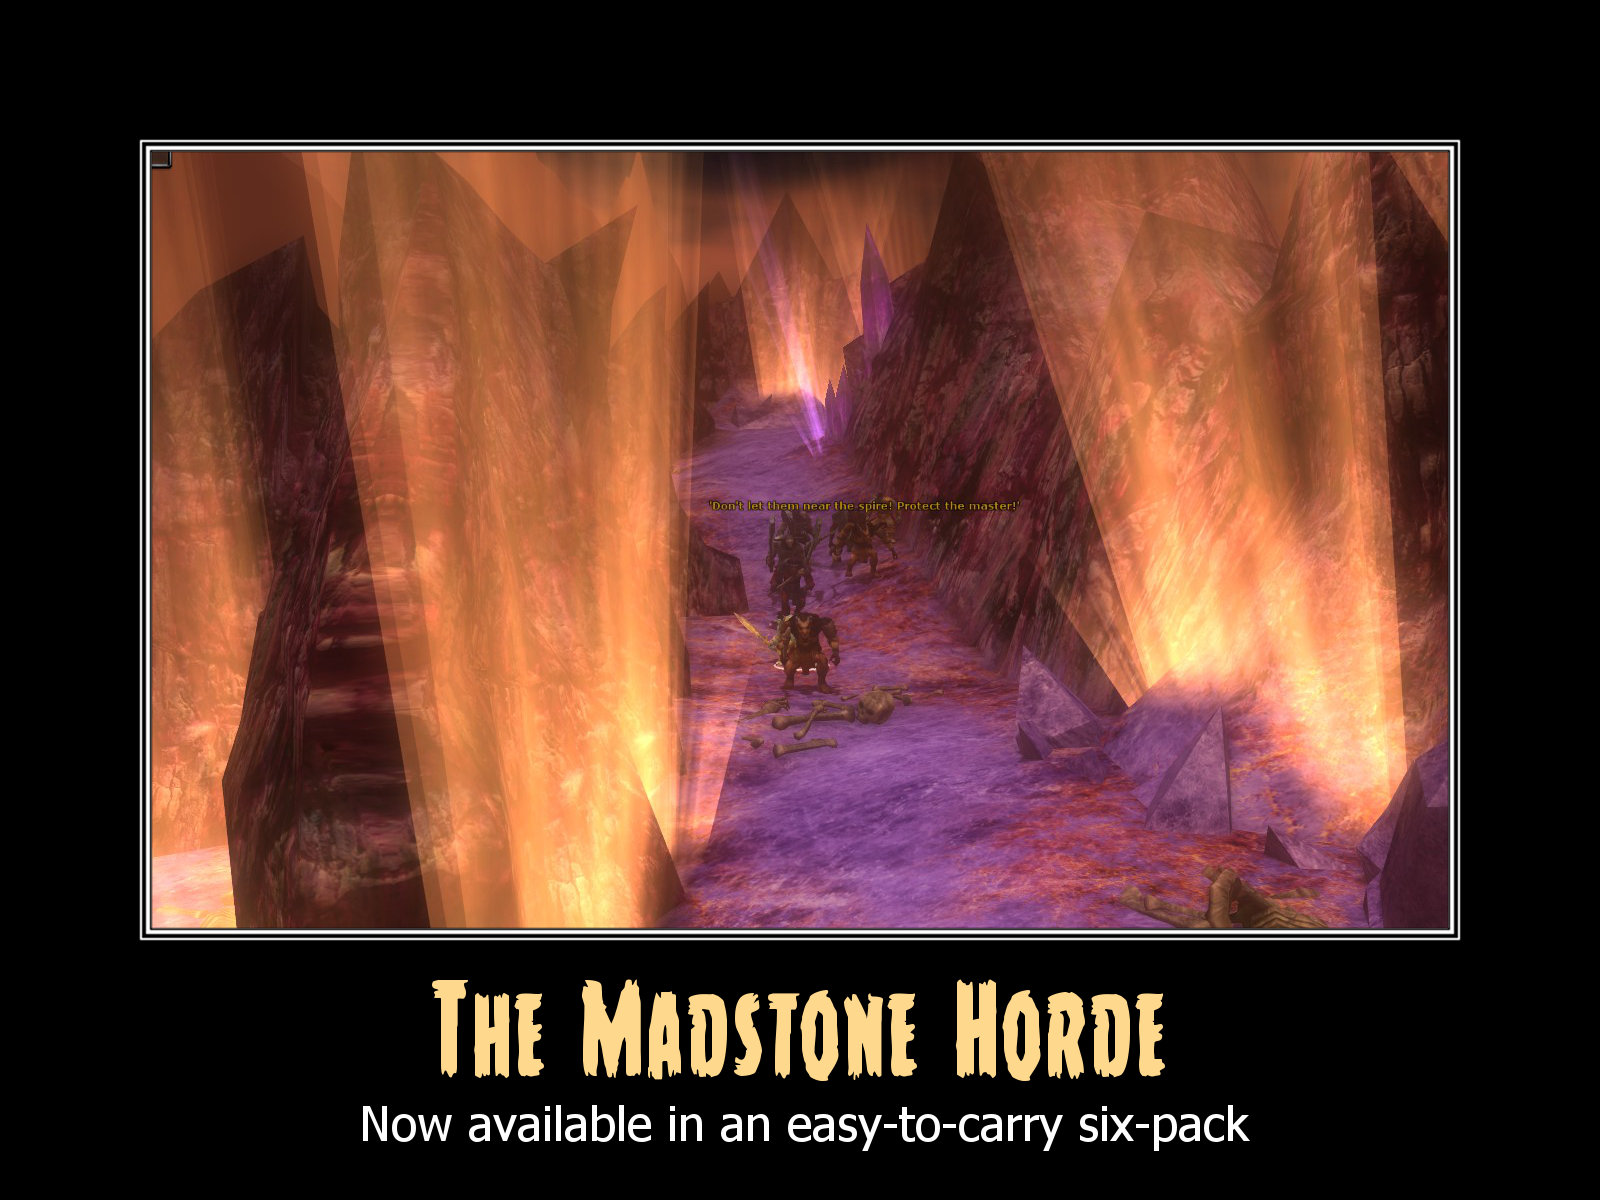 The Madstone Horde